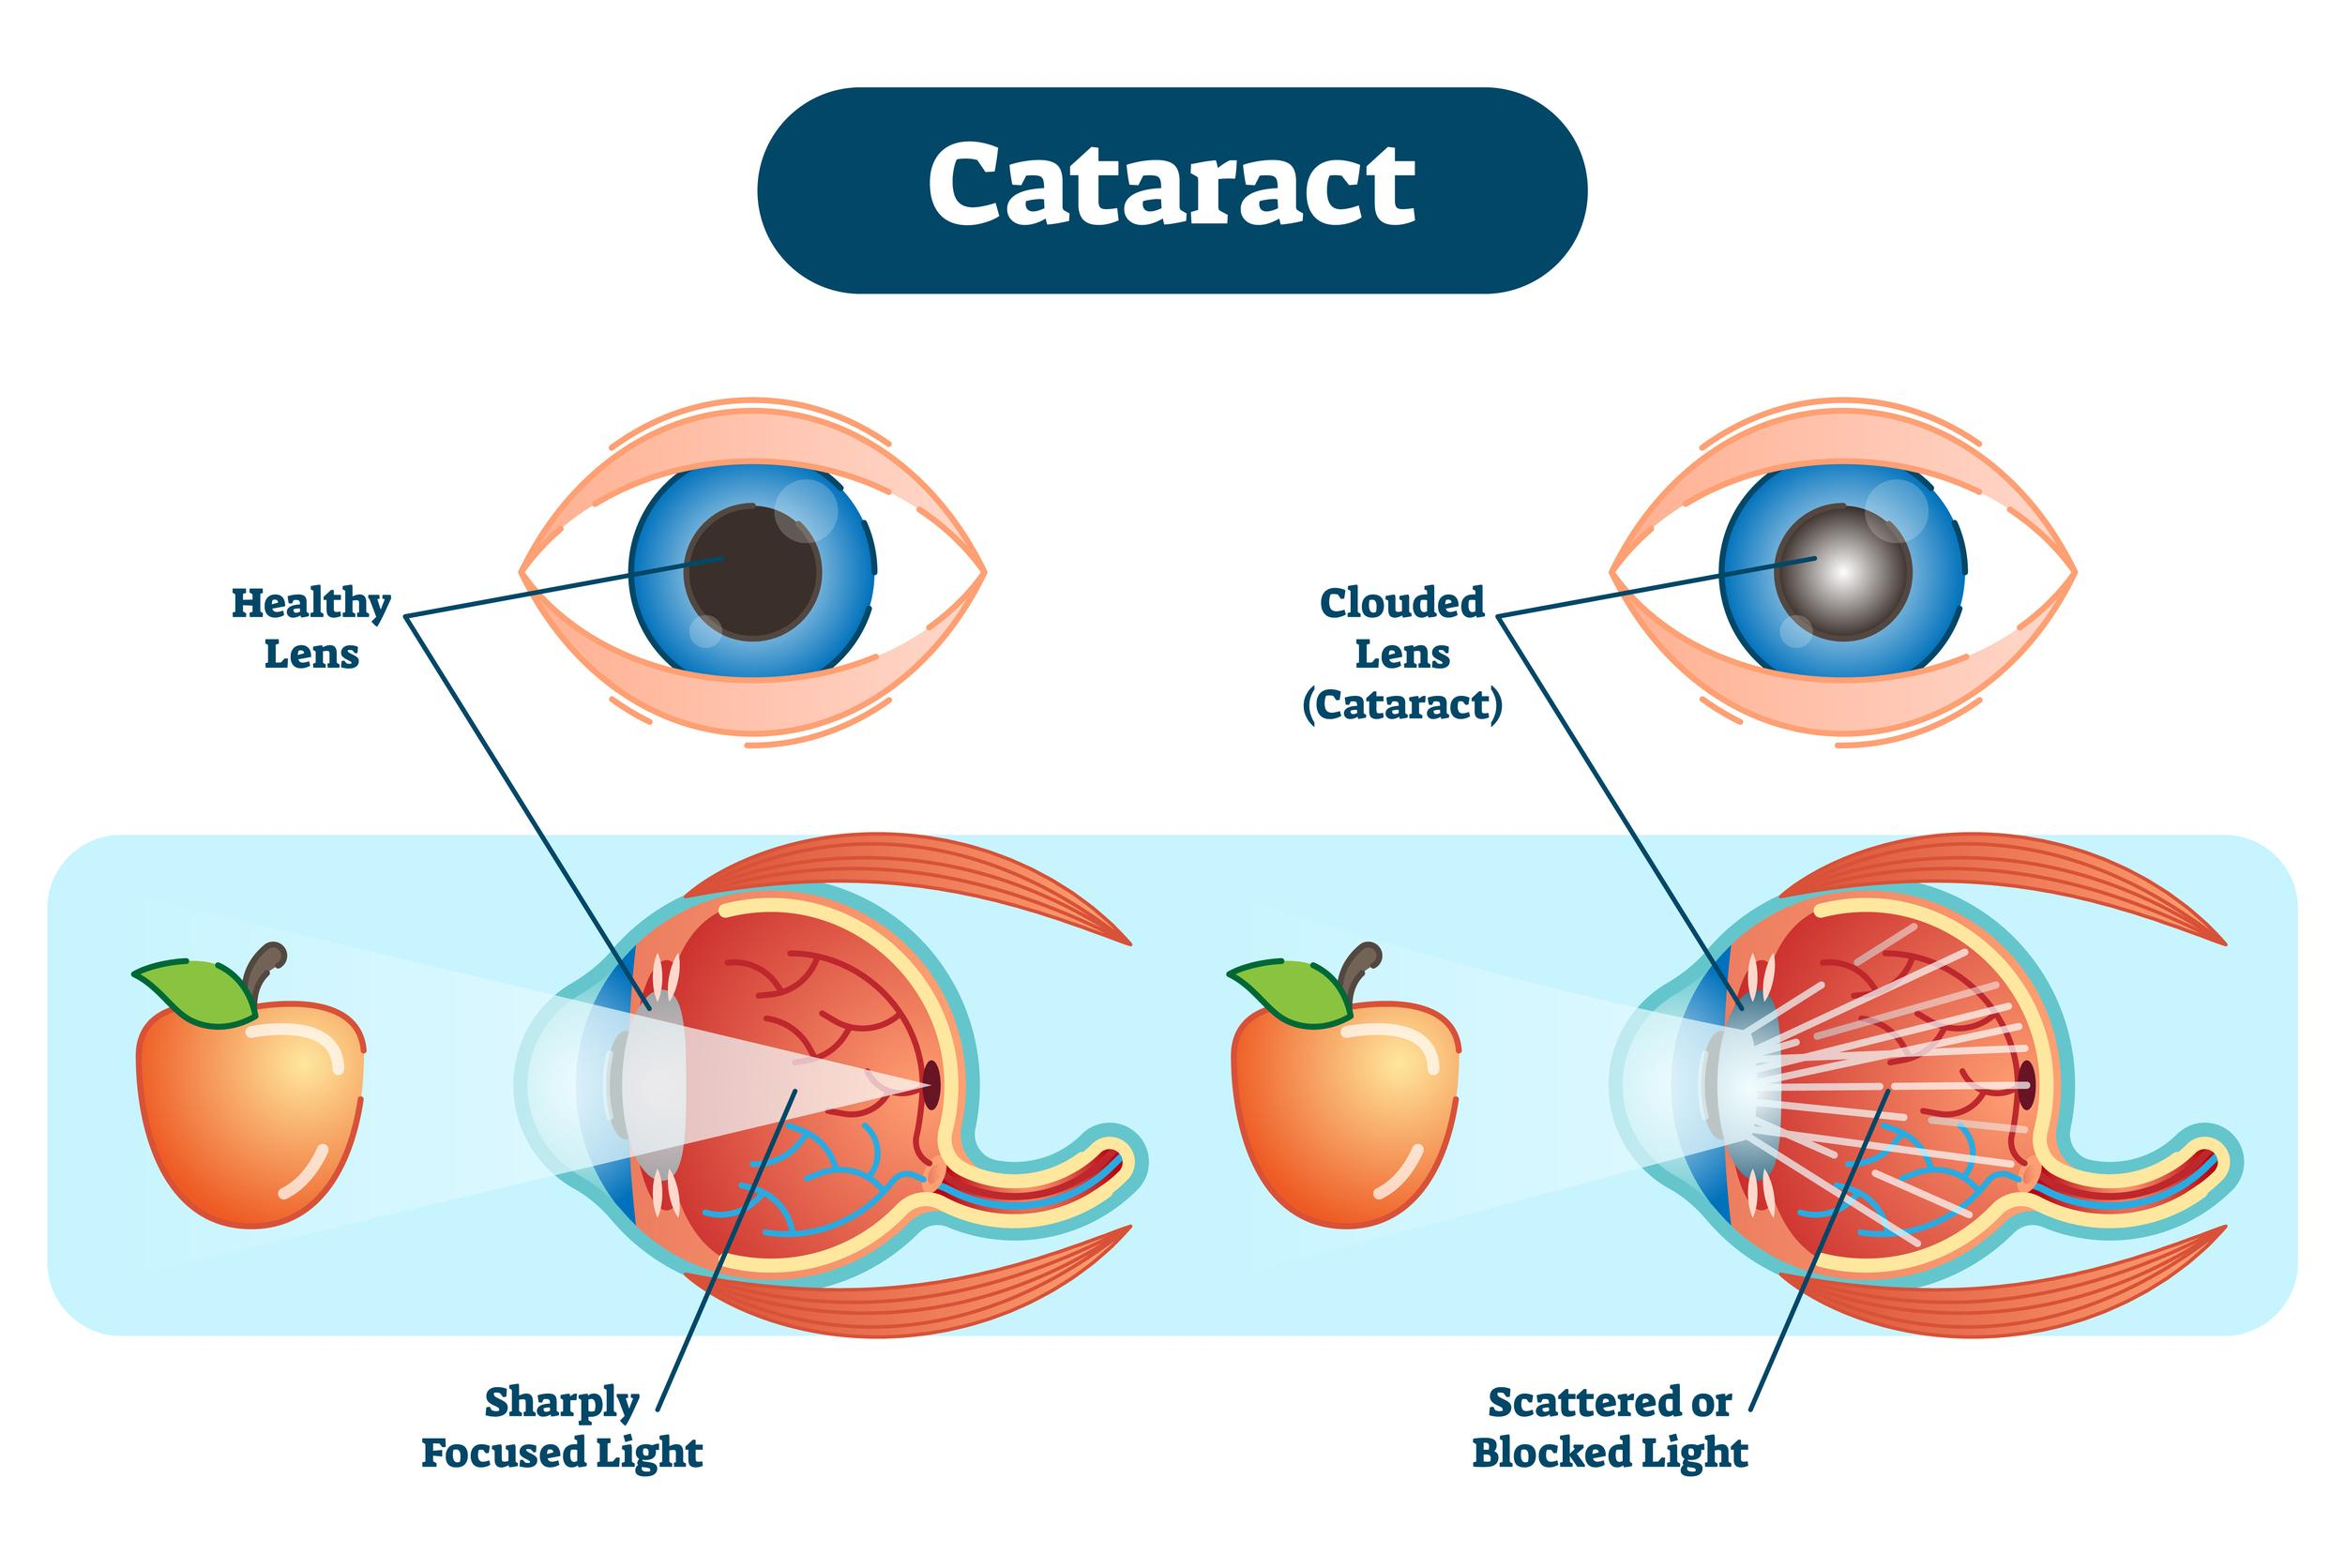 Cataracts and how it affects sight